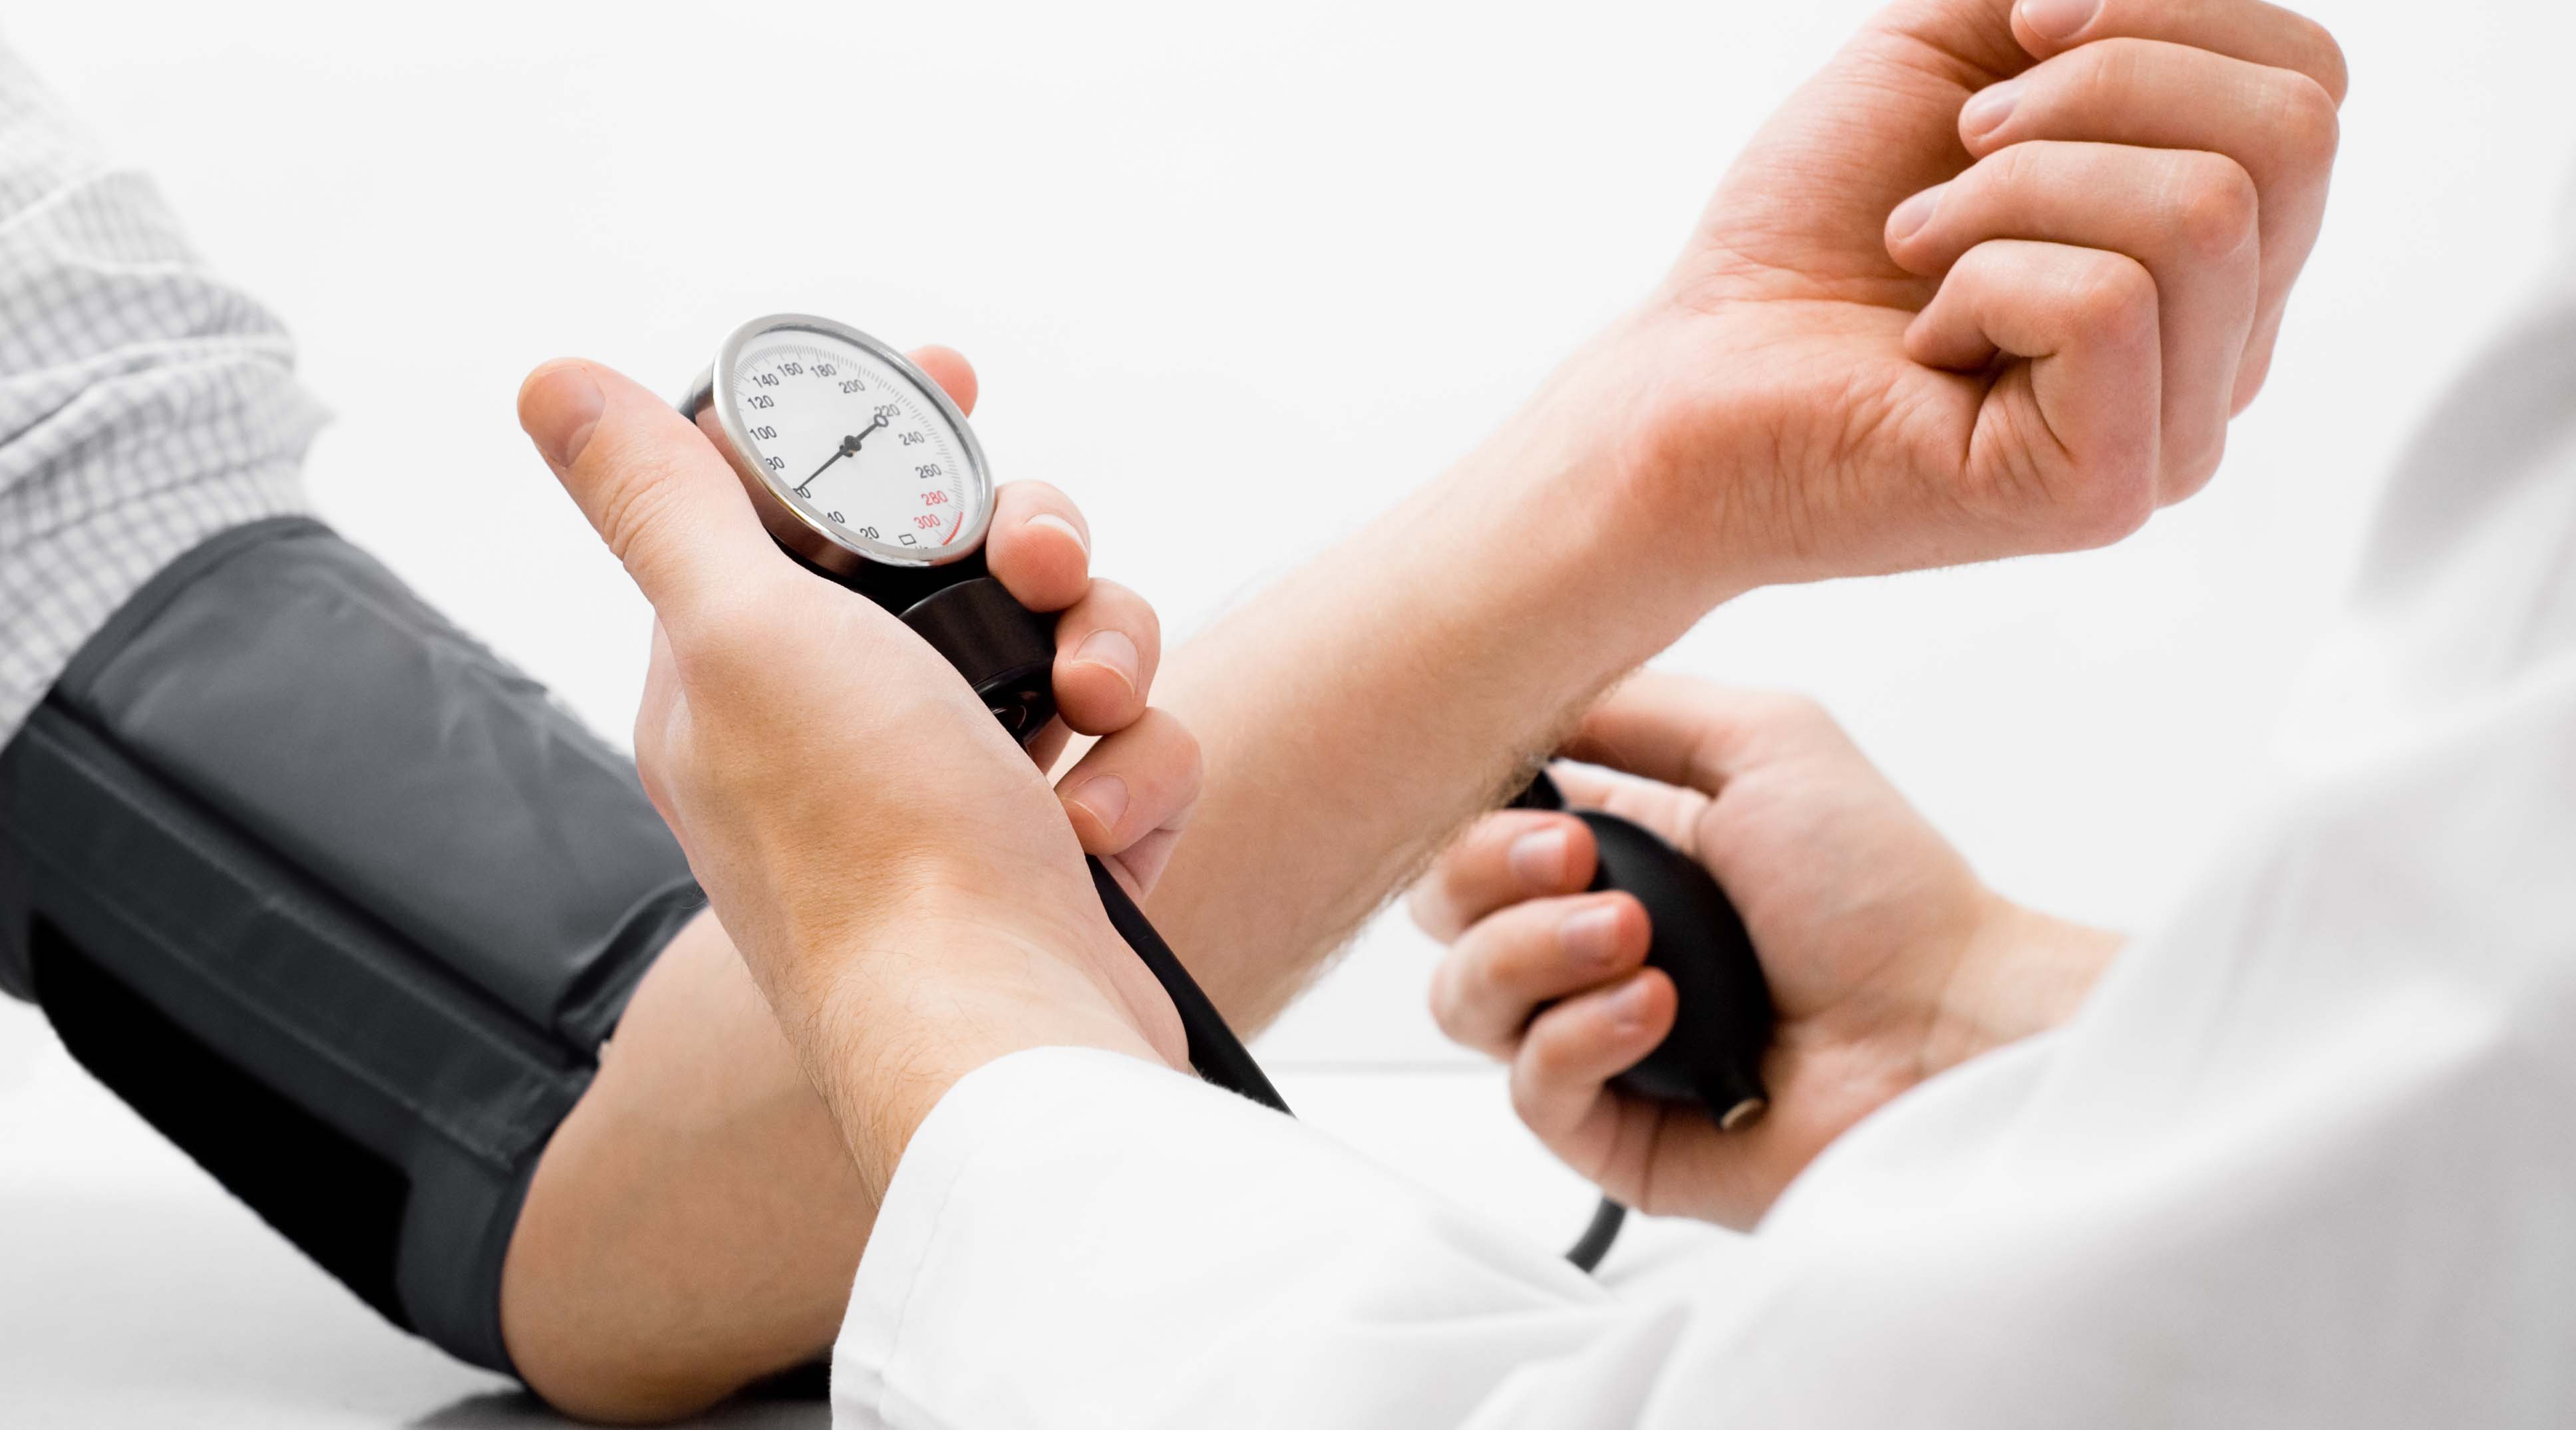 Can I take cold medications if I have high blood pressure?